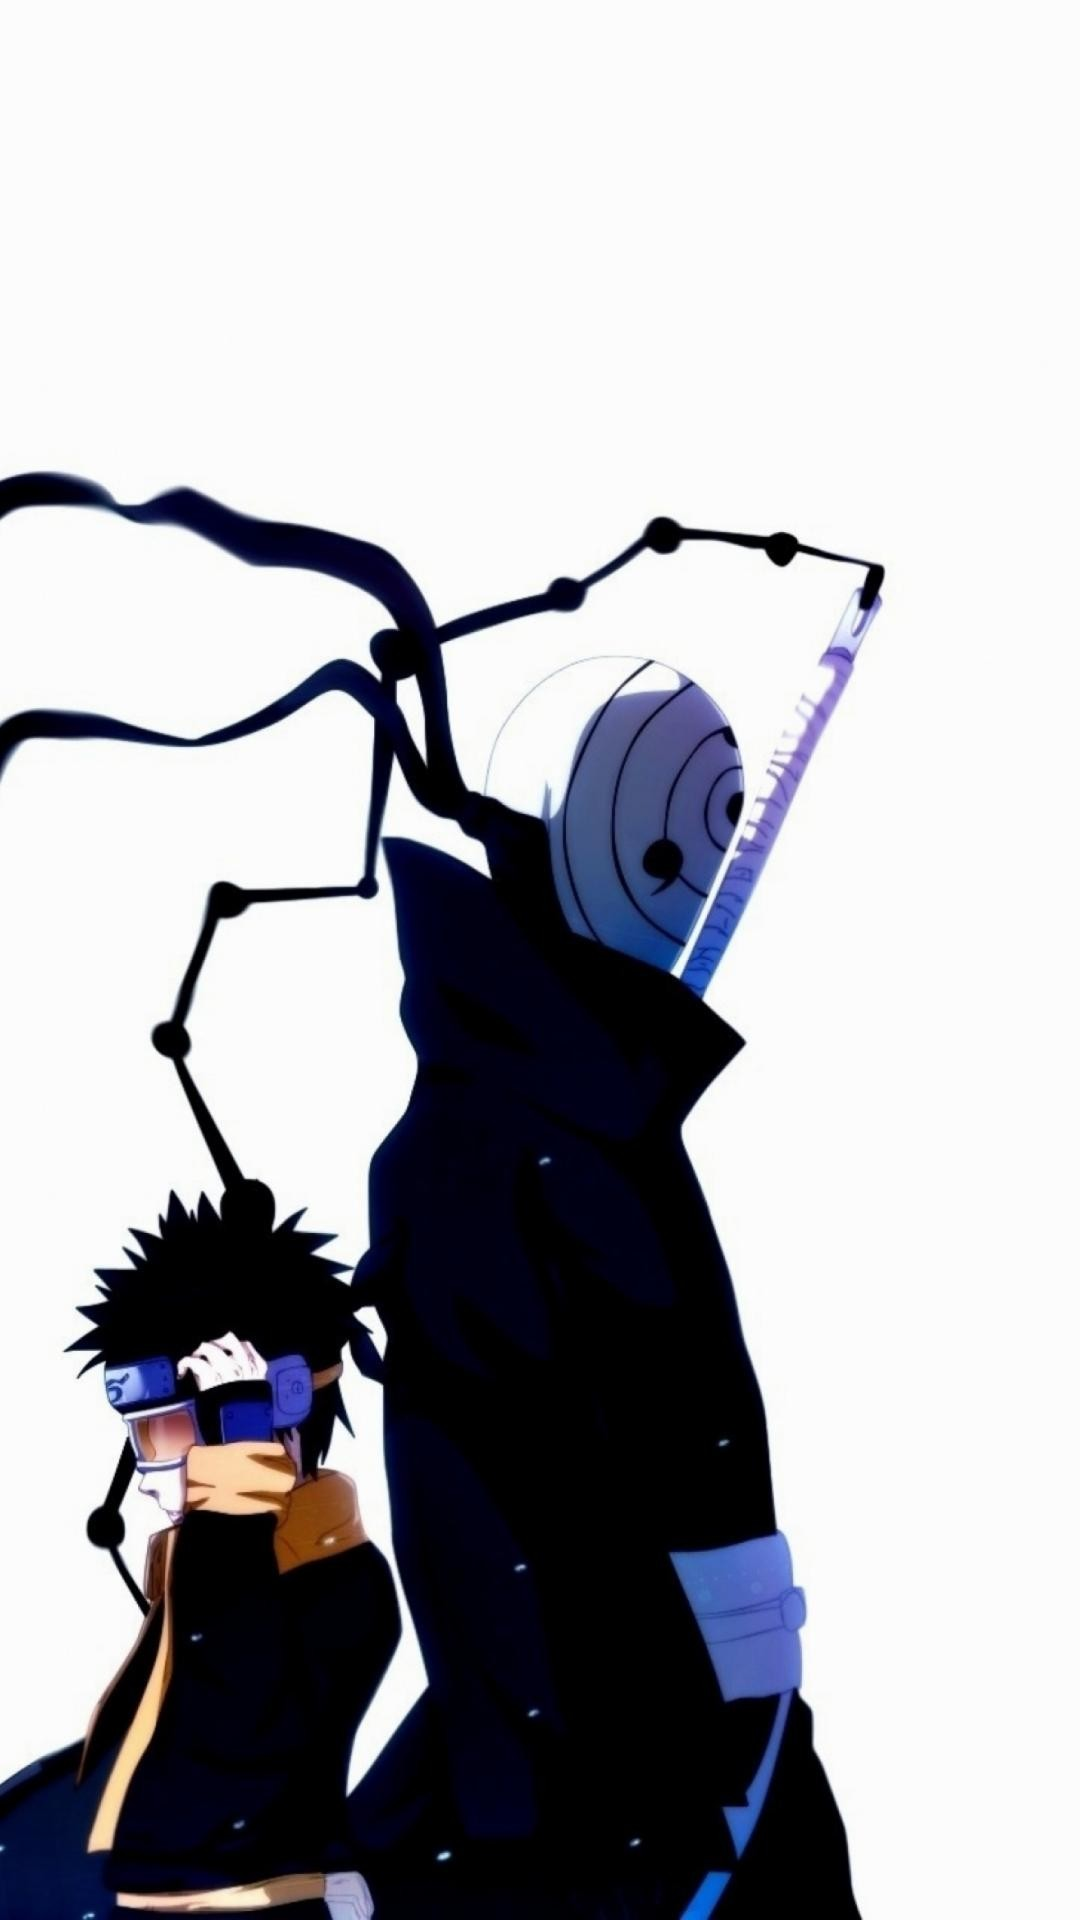 Source Naruto Wallpaper Iphone X The Best Of Wall 2017